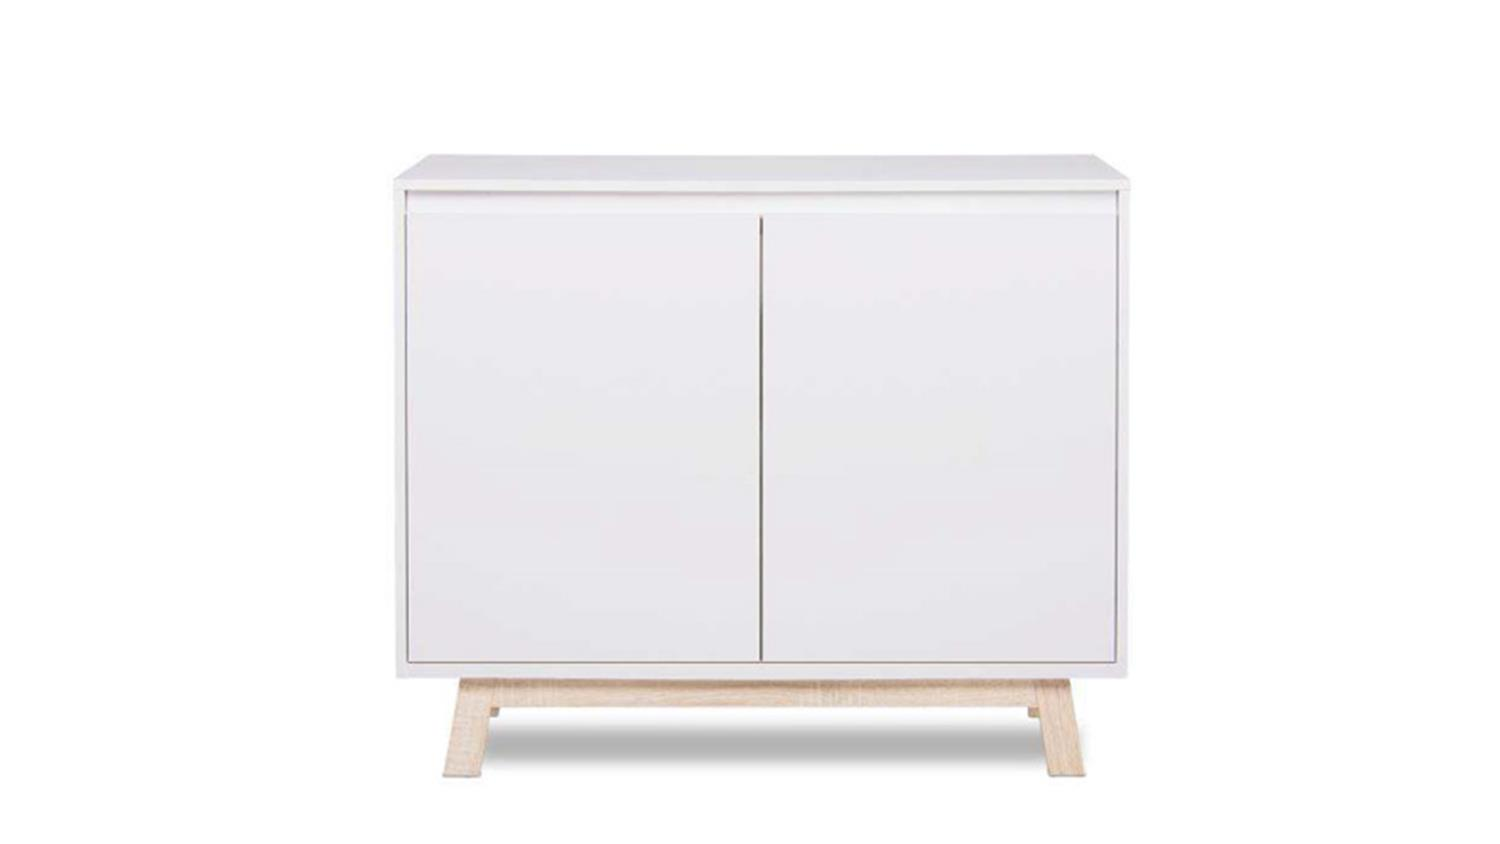 Kommode apart 1 sideboard anrichte in wei und sonoma for Kommode 140 x 100